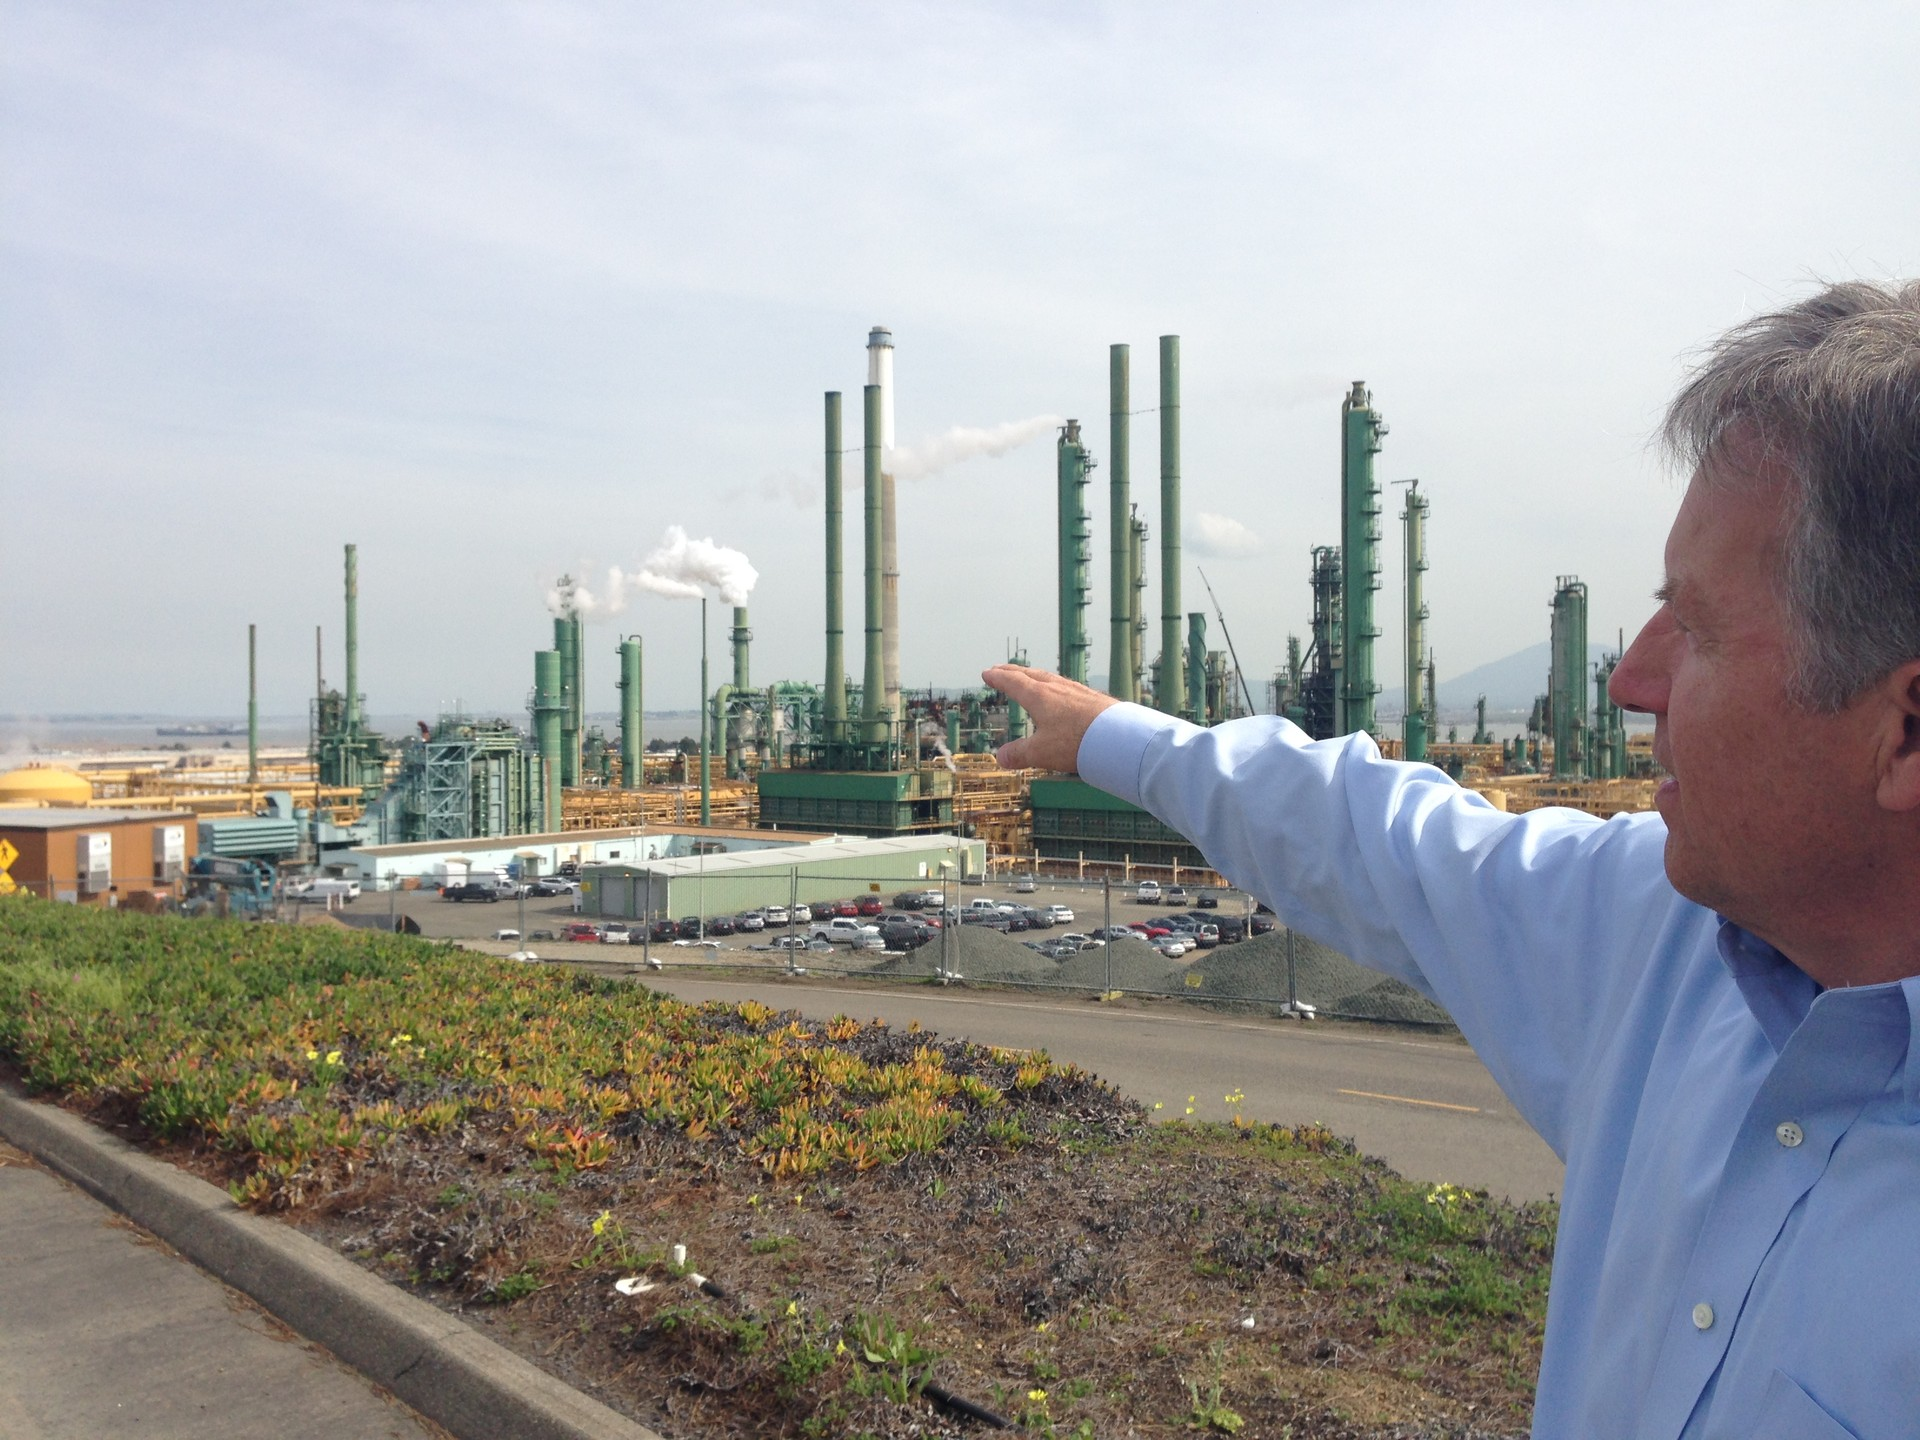 Chris Howe, safety director for Valero's Benicia refinery, points to where trains would come to deliver crude oil during a tour on March 2, 2016.